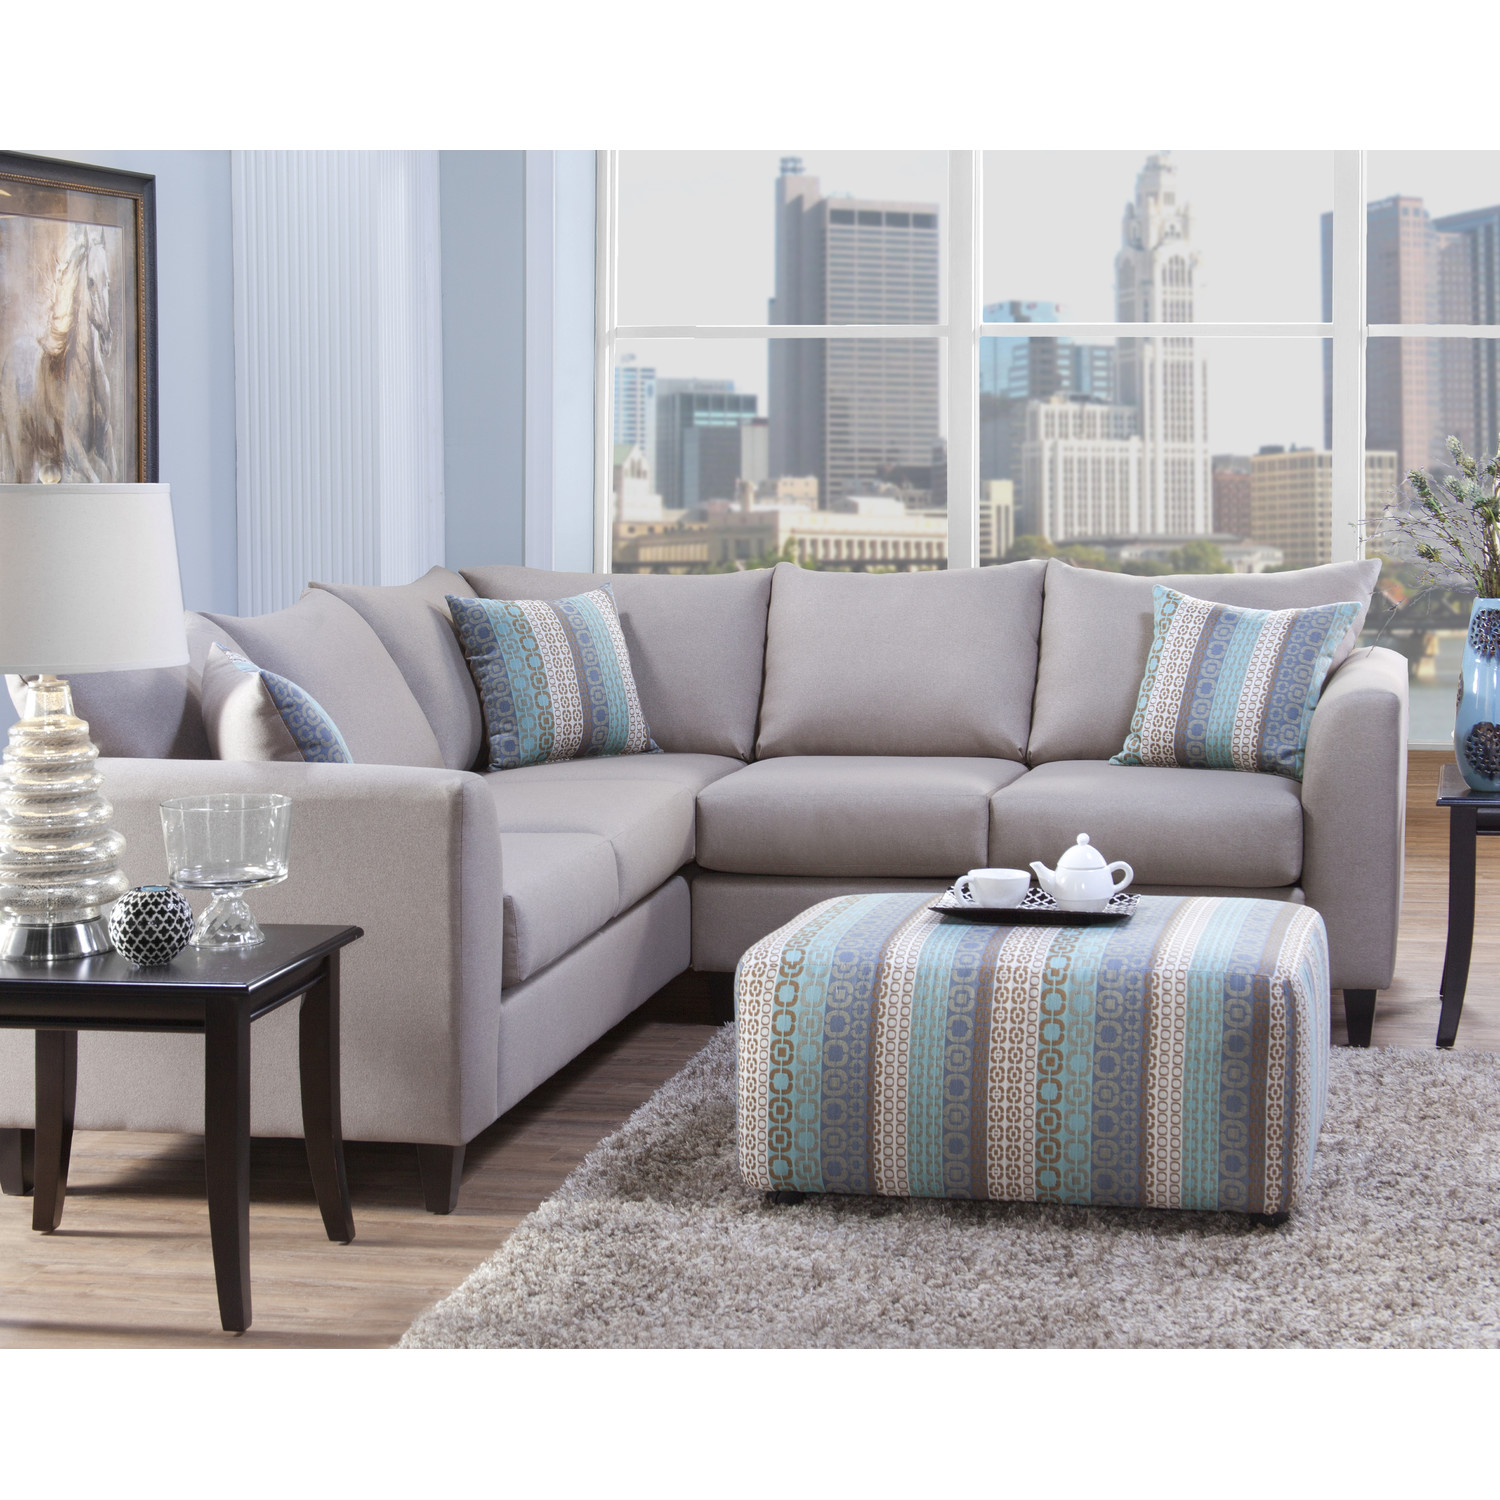 Wondrous Sectionals Sofas With Sidetable And Area Rugs